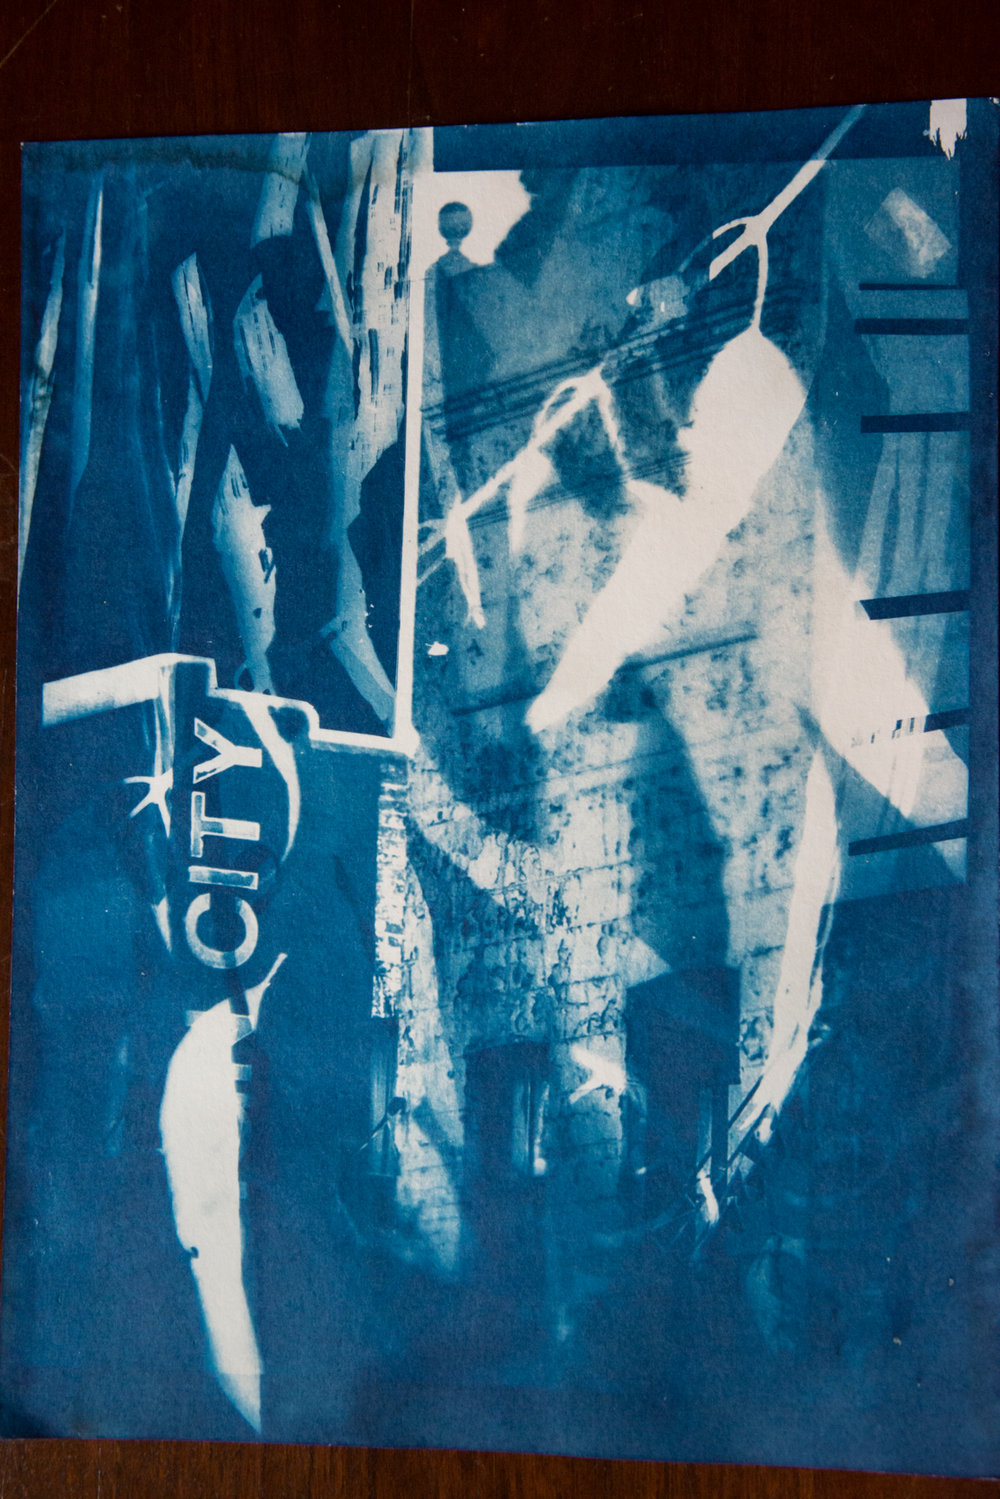 Marie Craig,  Sign City 3,  cyanotype on paper, 17x14, framed